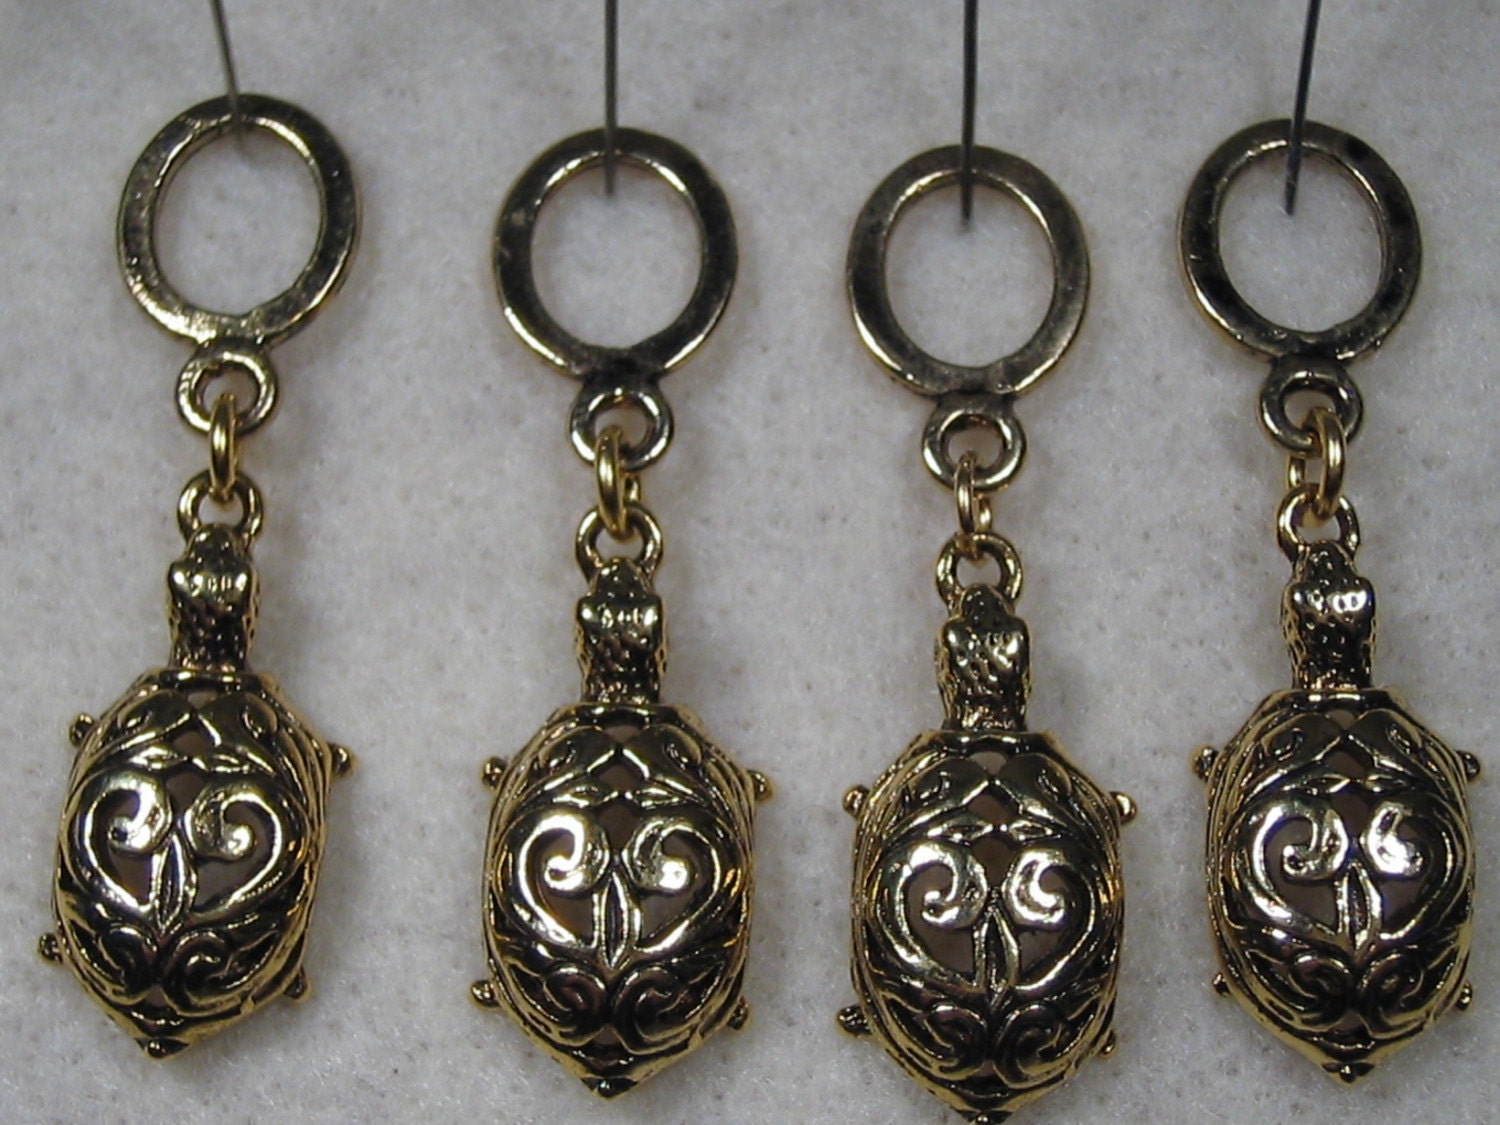 Decorative Knitting Stitch Markers : decorative turtle stitch markers